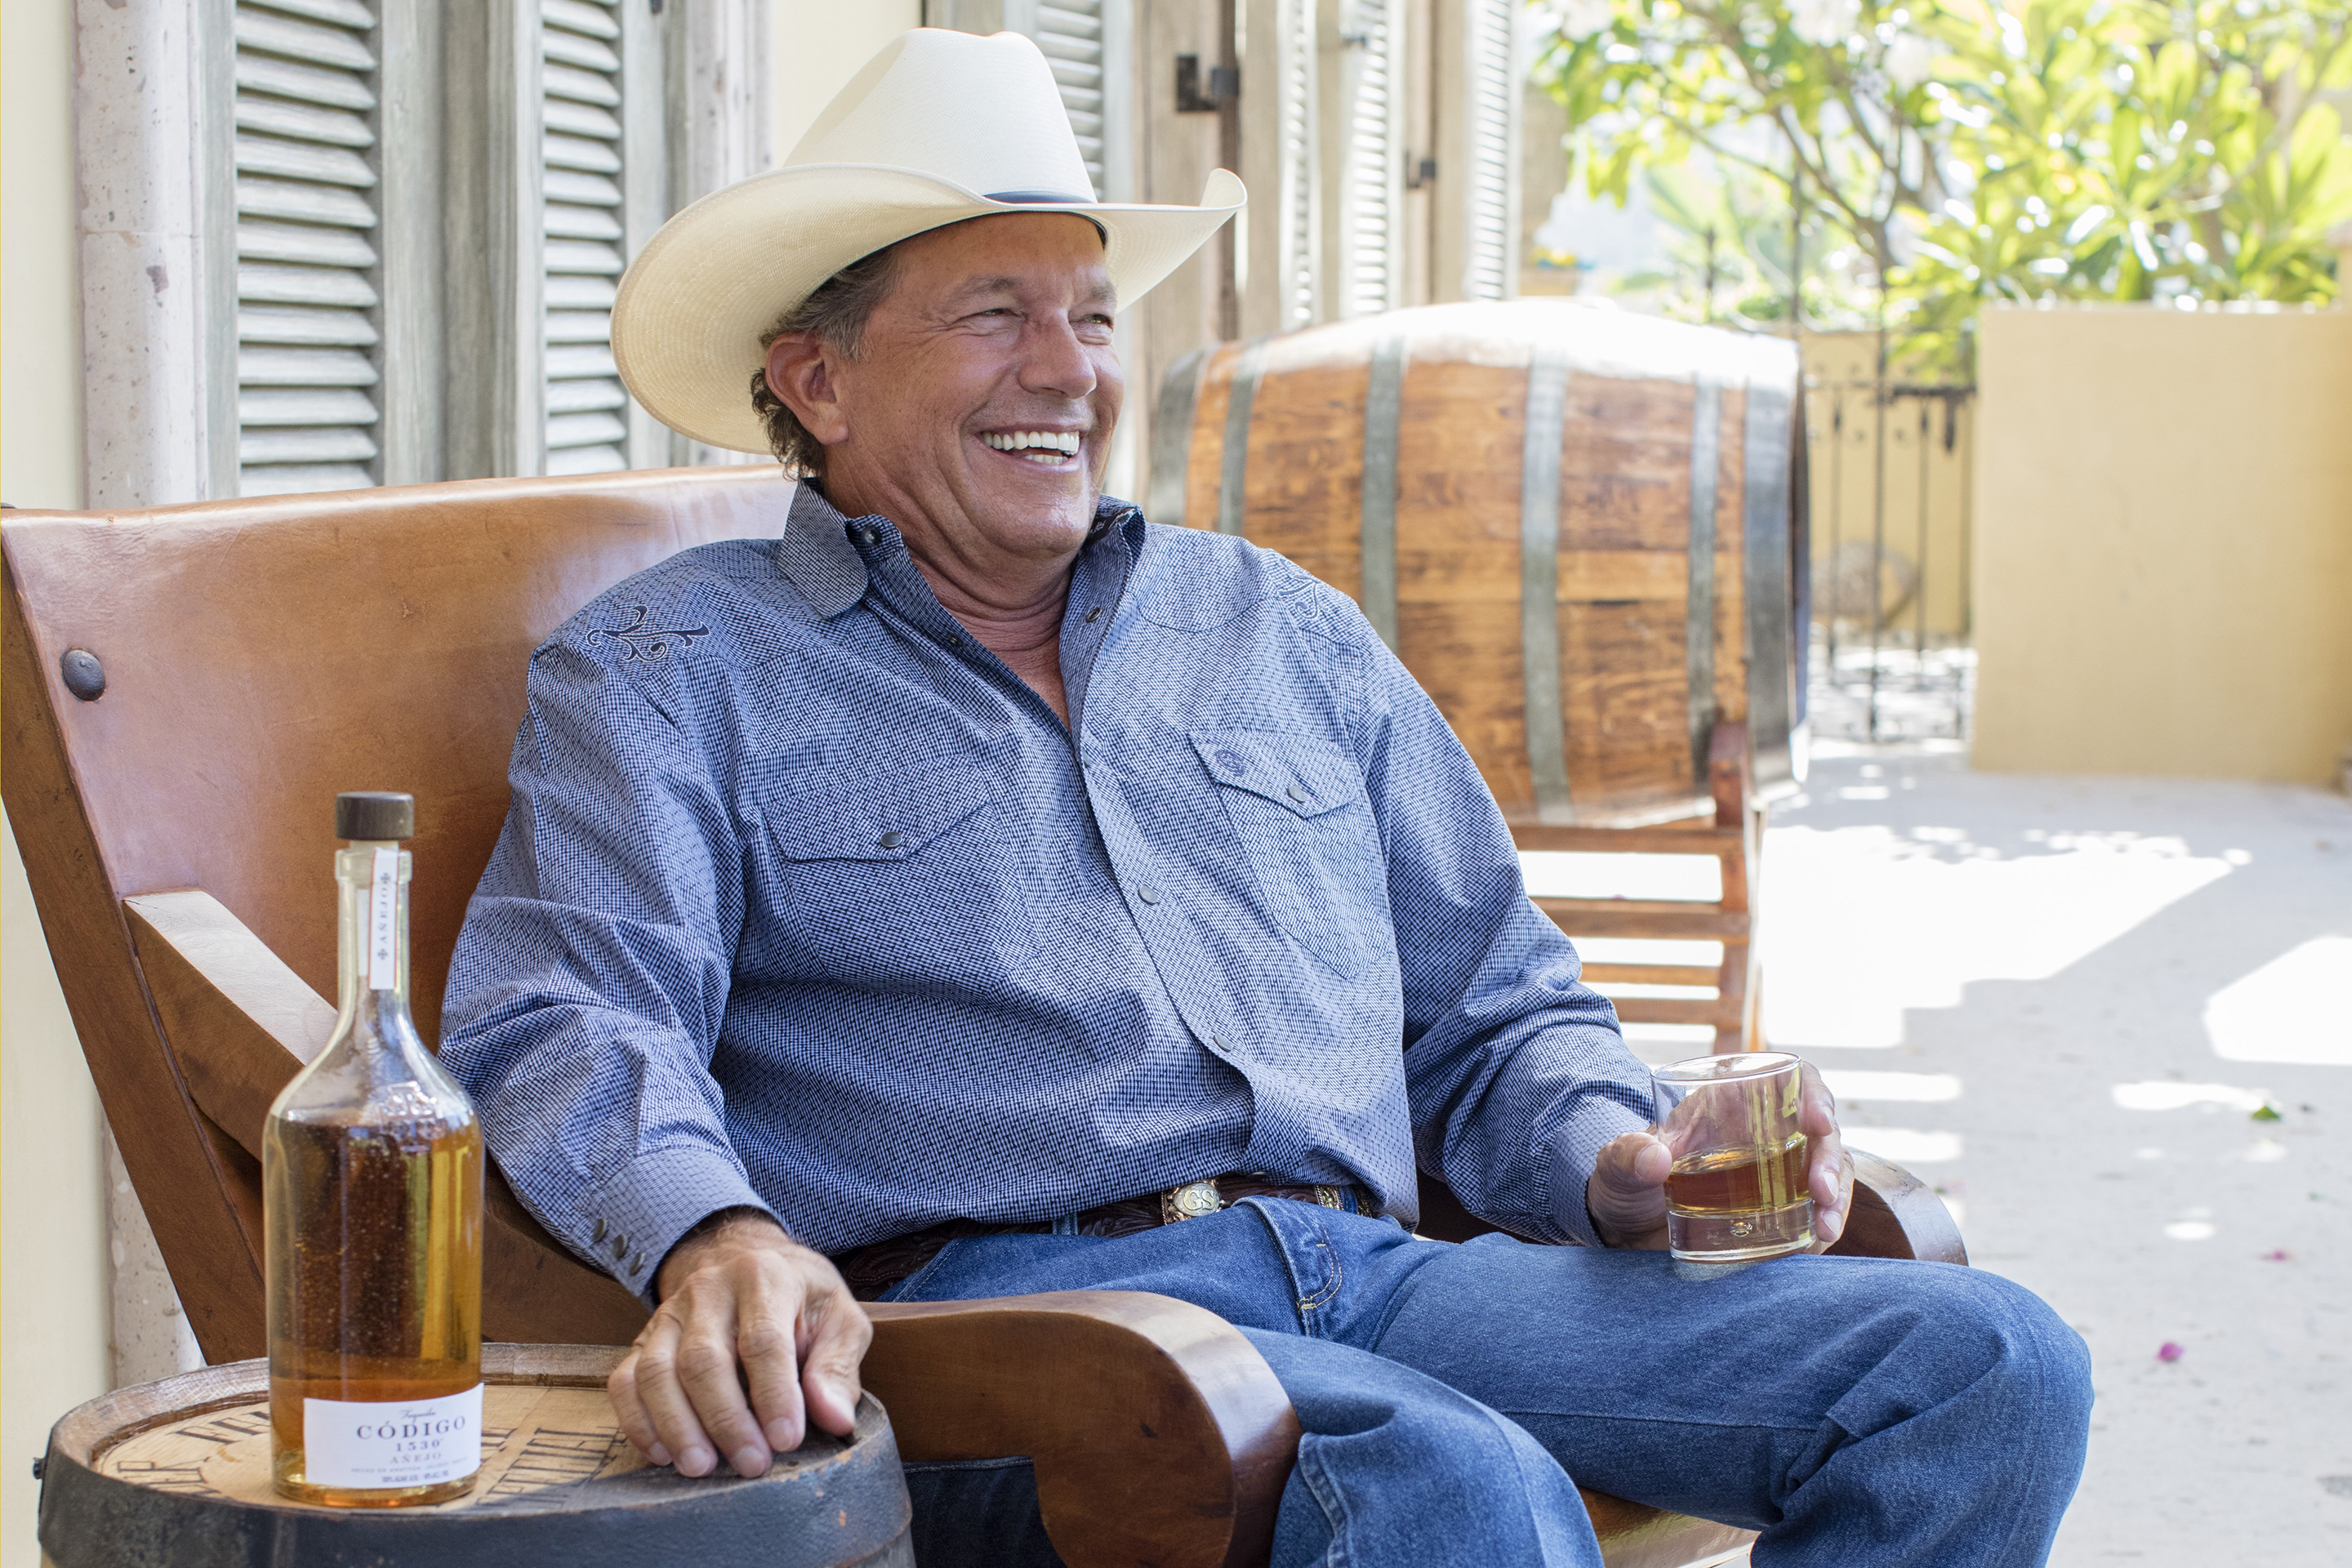 Country singer George Strait is an investor in Código tequila.